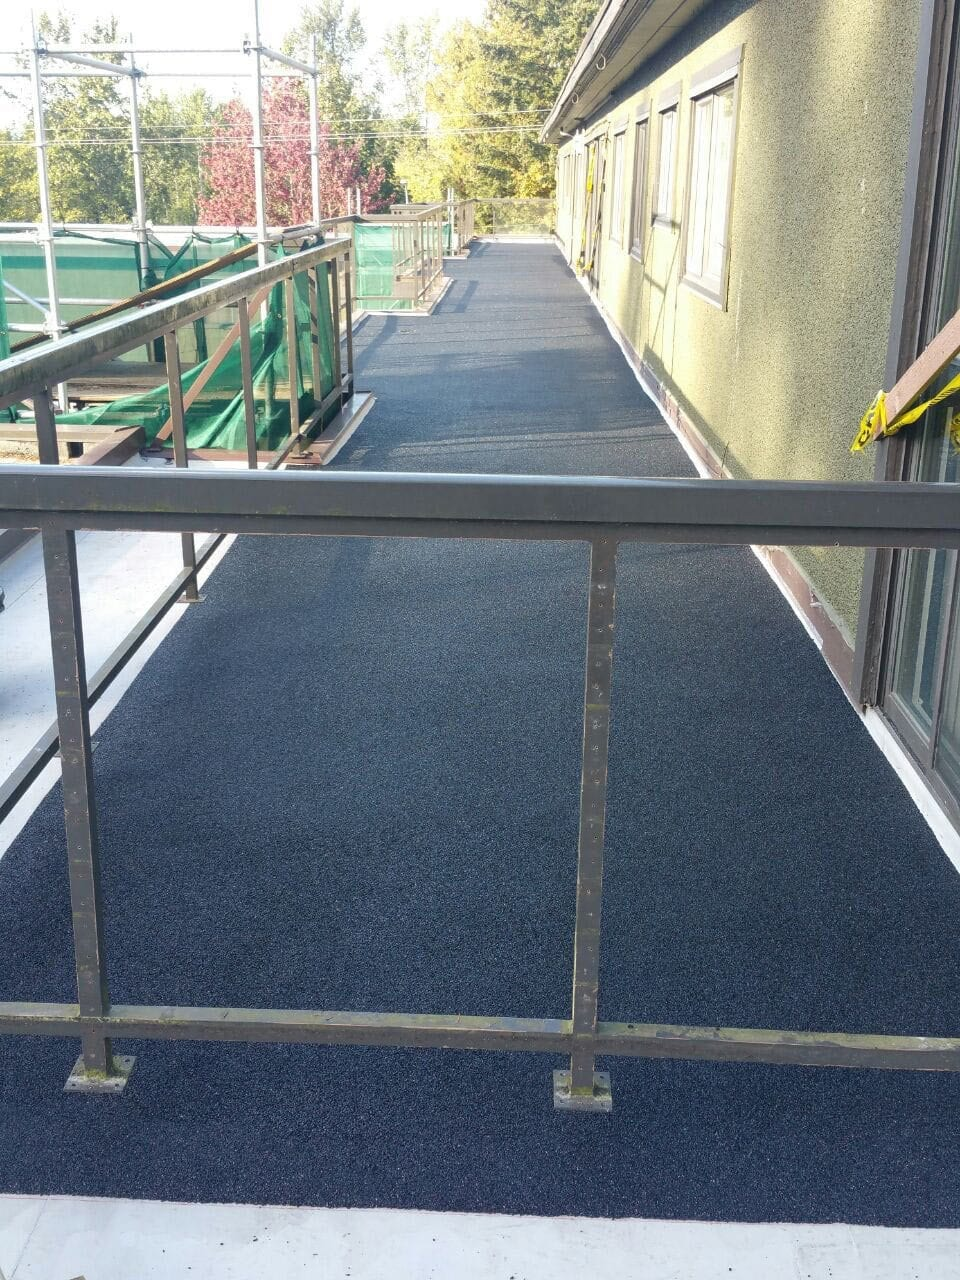 Roof with rubber surfacing